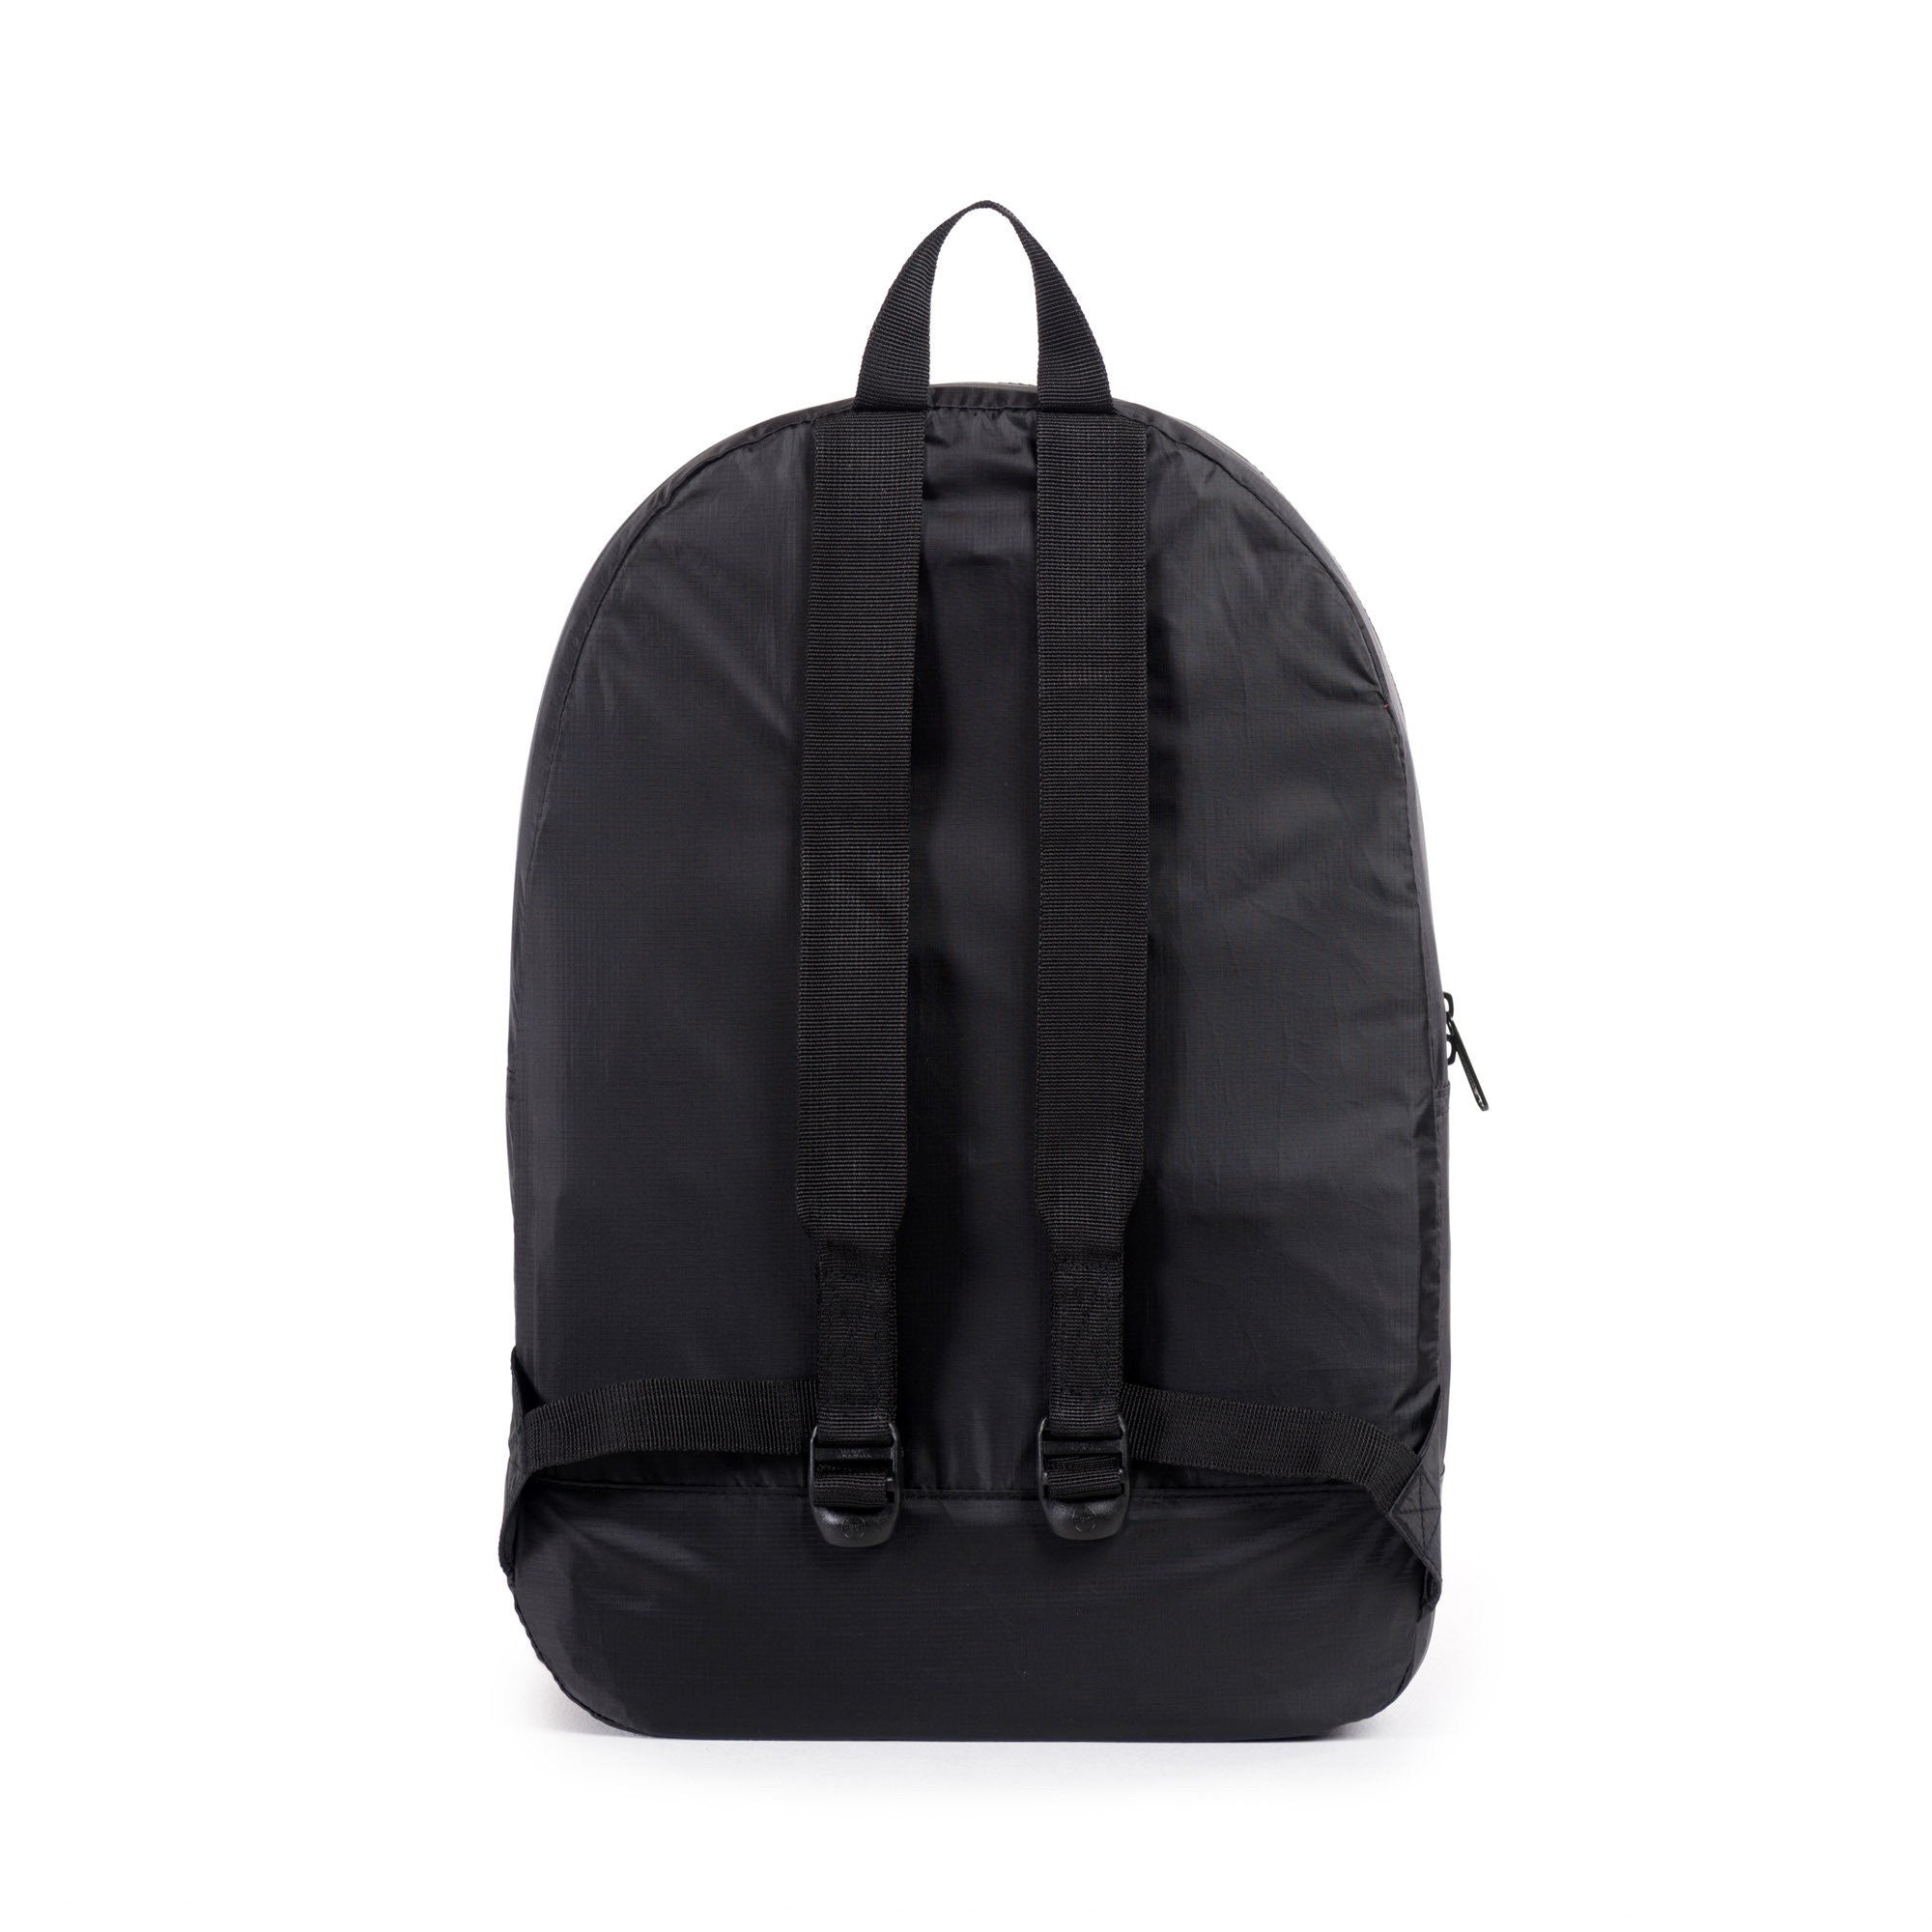 Herschel Packable Backpack Black